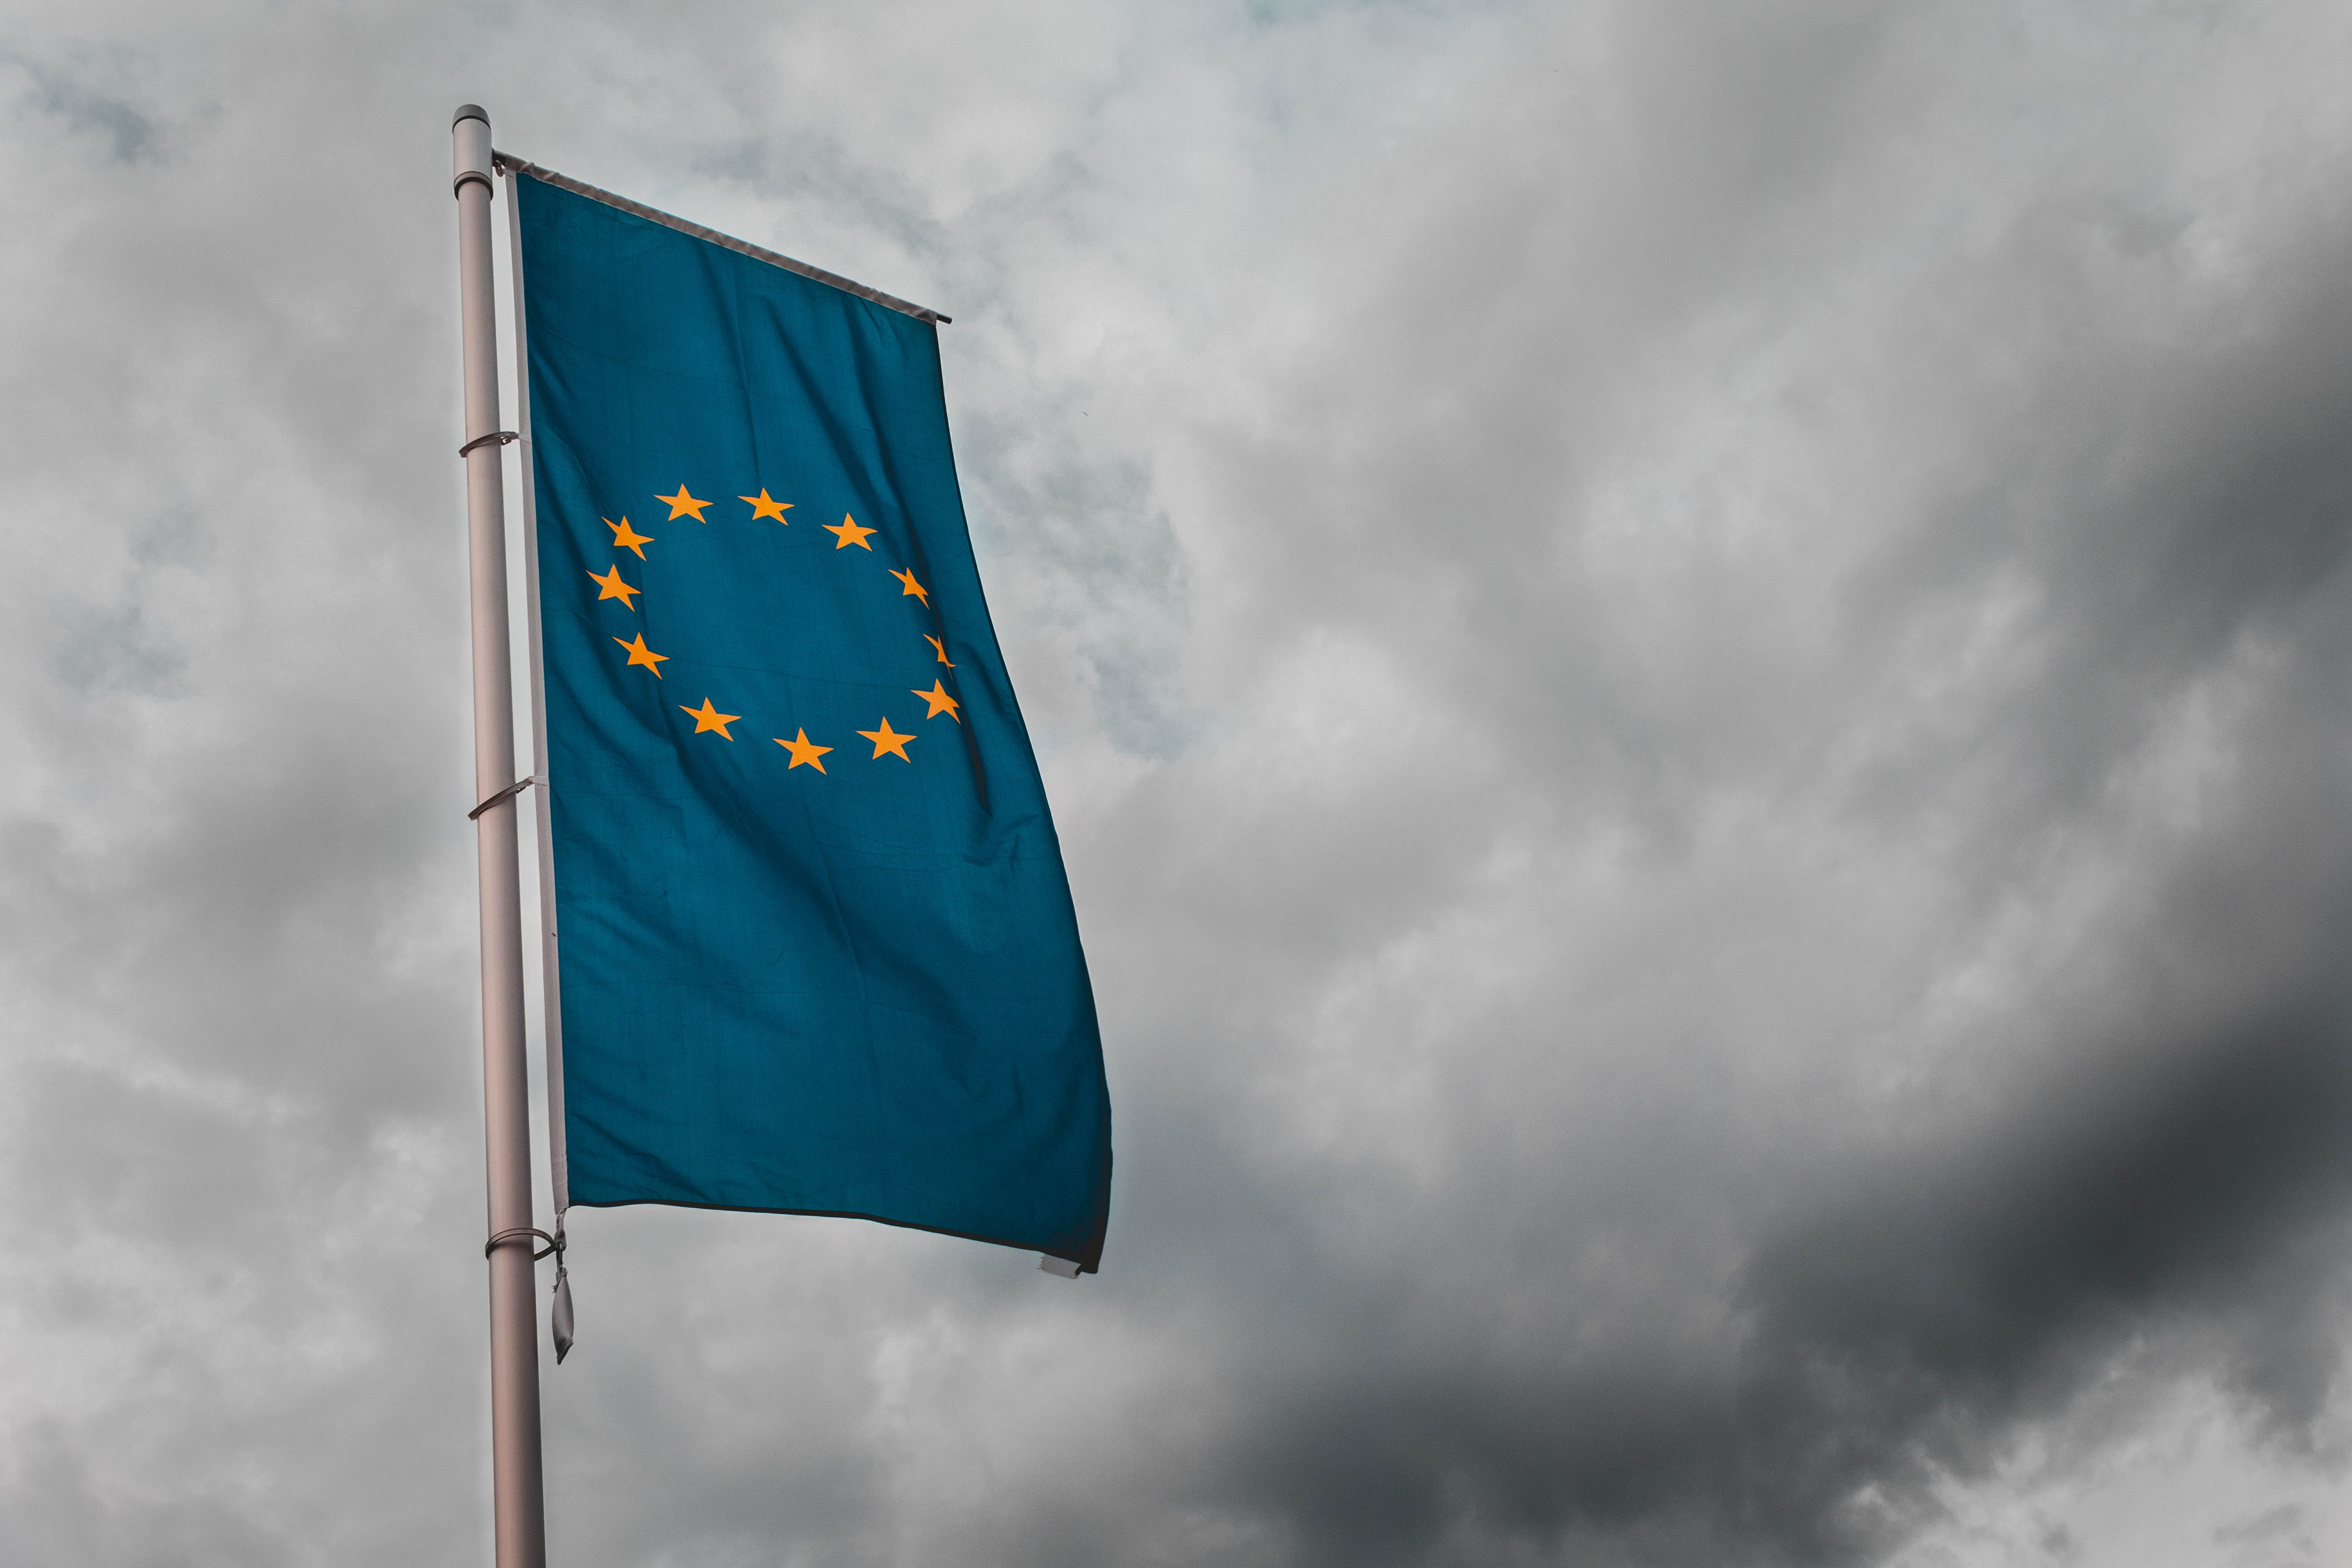 European Union flag. Photo via Sara Kurfeß on Unsplash